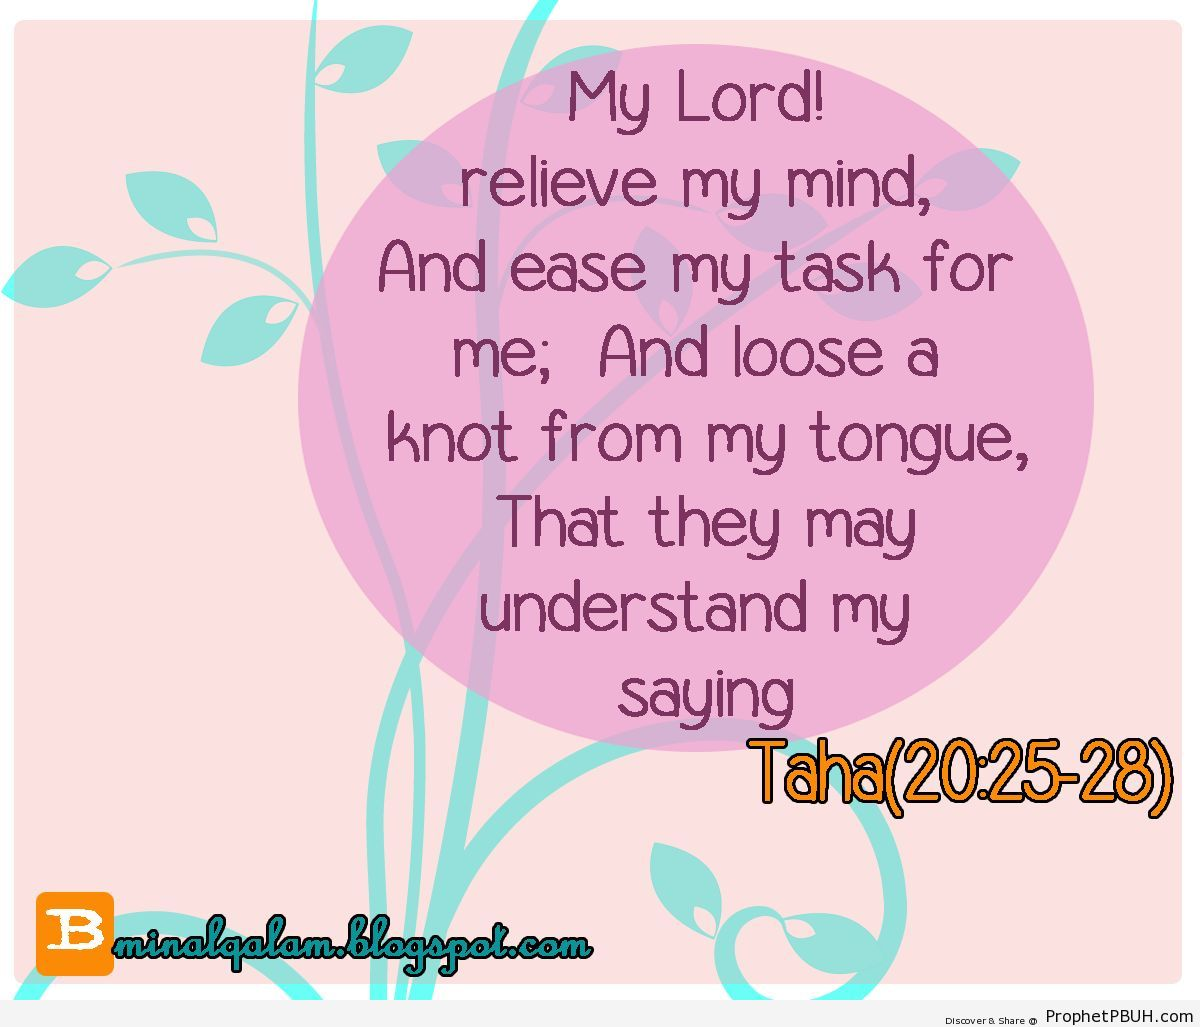 My Lord! relieve my mind (25)And ease my task for... - Islamic Quotes, Hadiths, Duas